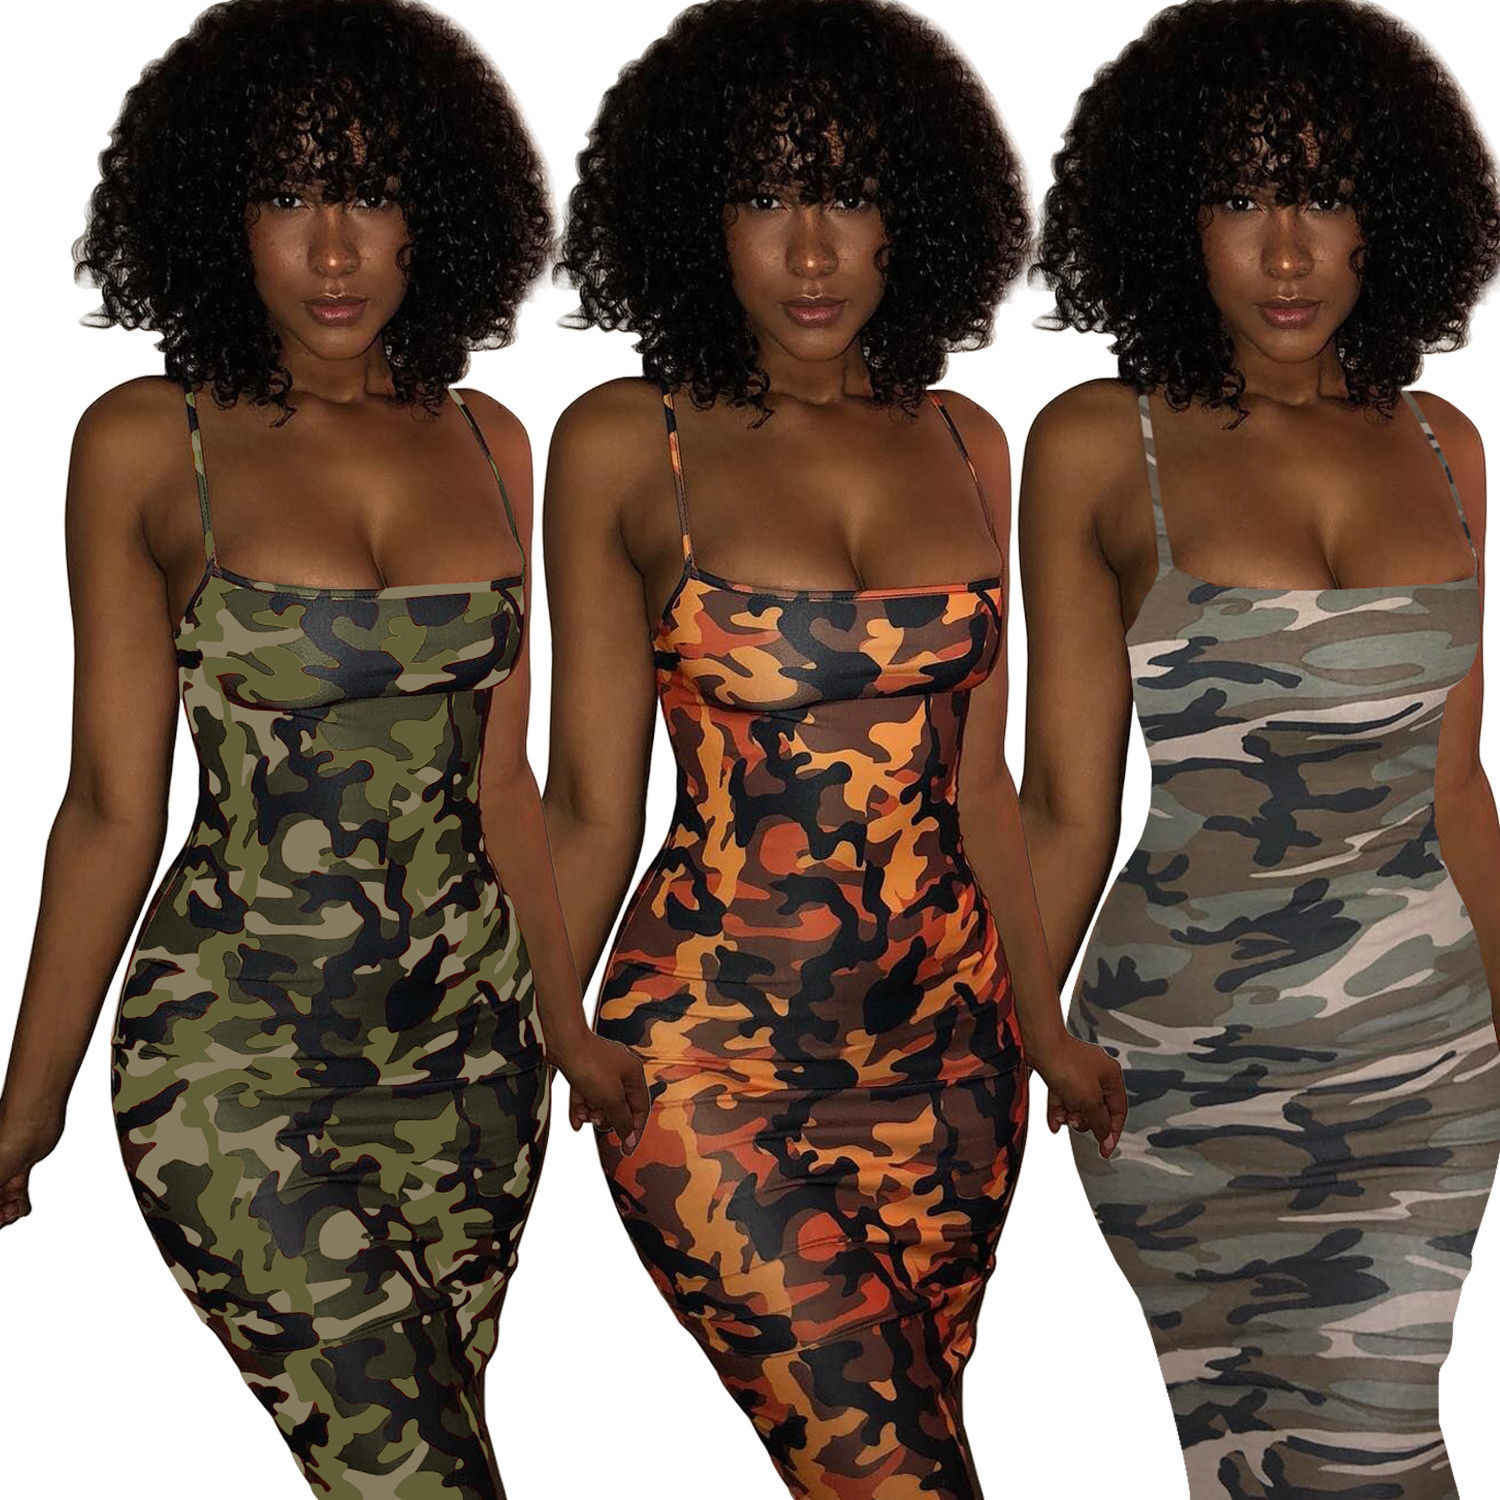 NEW Sexy Women Camouflage Sleeveless Bandage Bodycon Mini Dress Evening Party Club Short Dresses Vestido Plus Size S-3XL